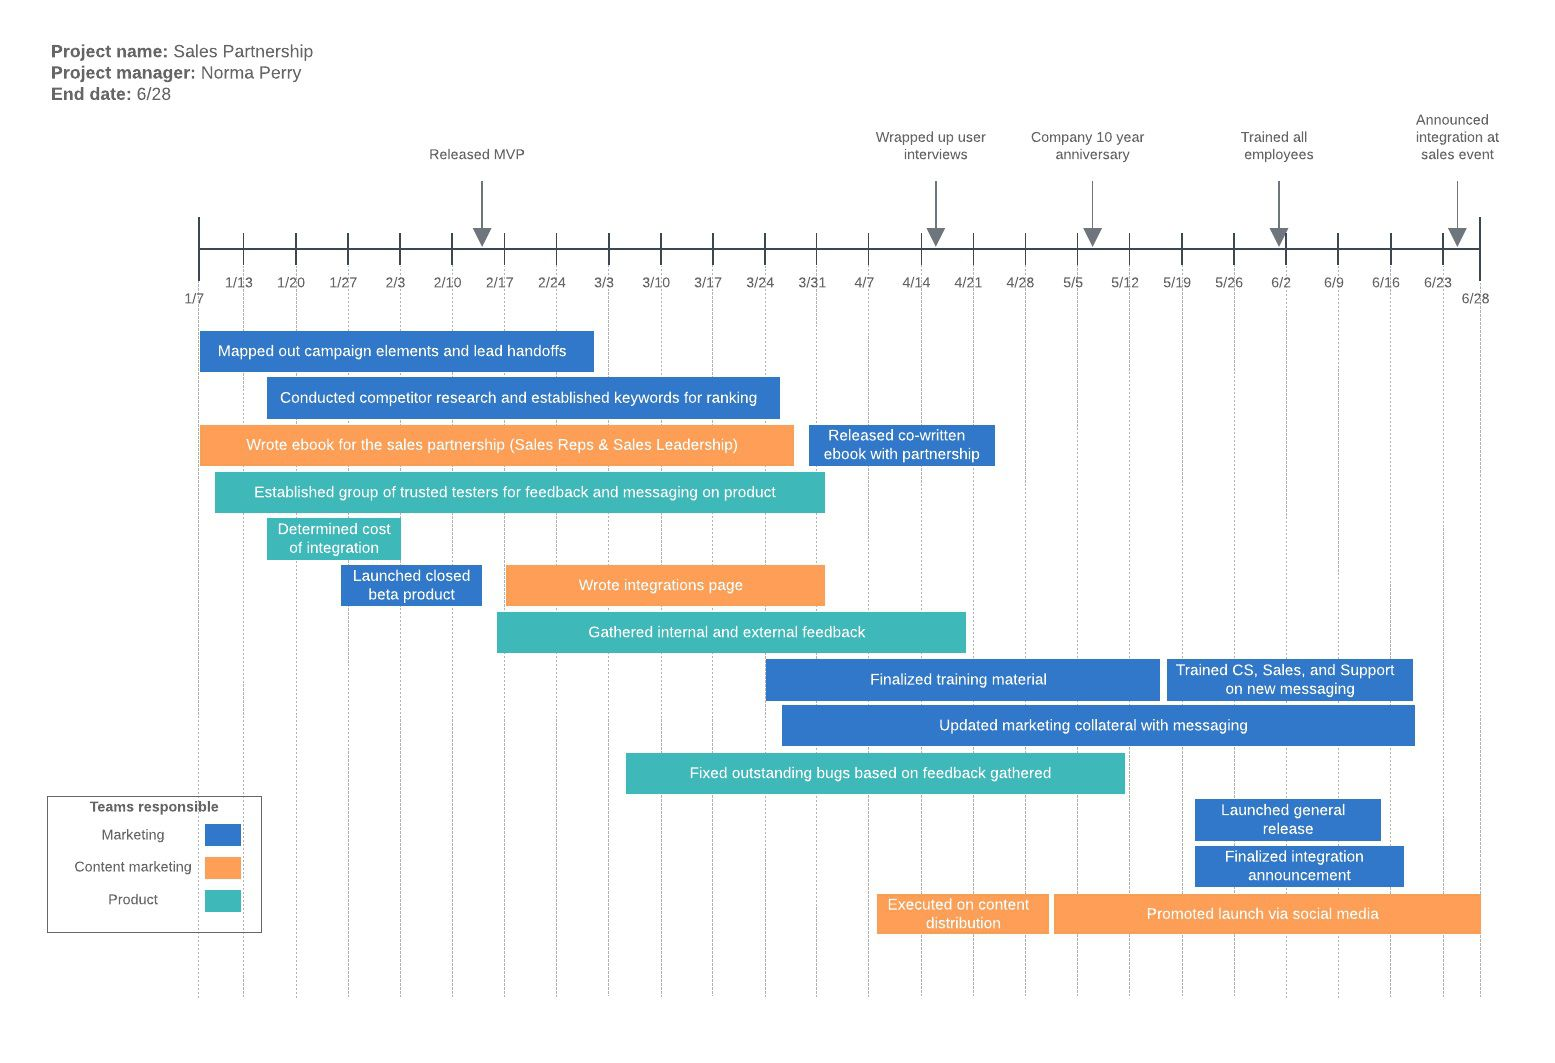 007 Unusual Microsoft Excel Timeline Template Highest Clarity  Templates Project Free DownloadFull